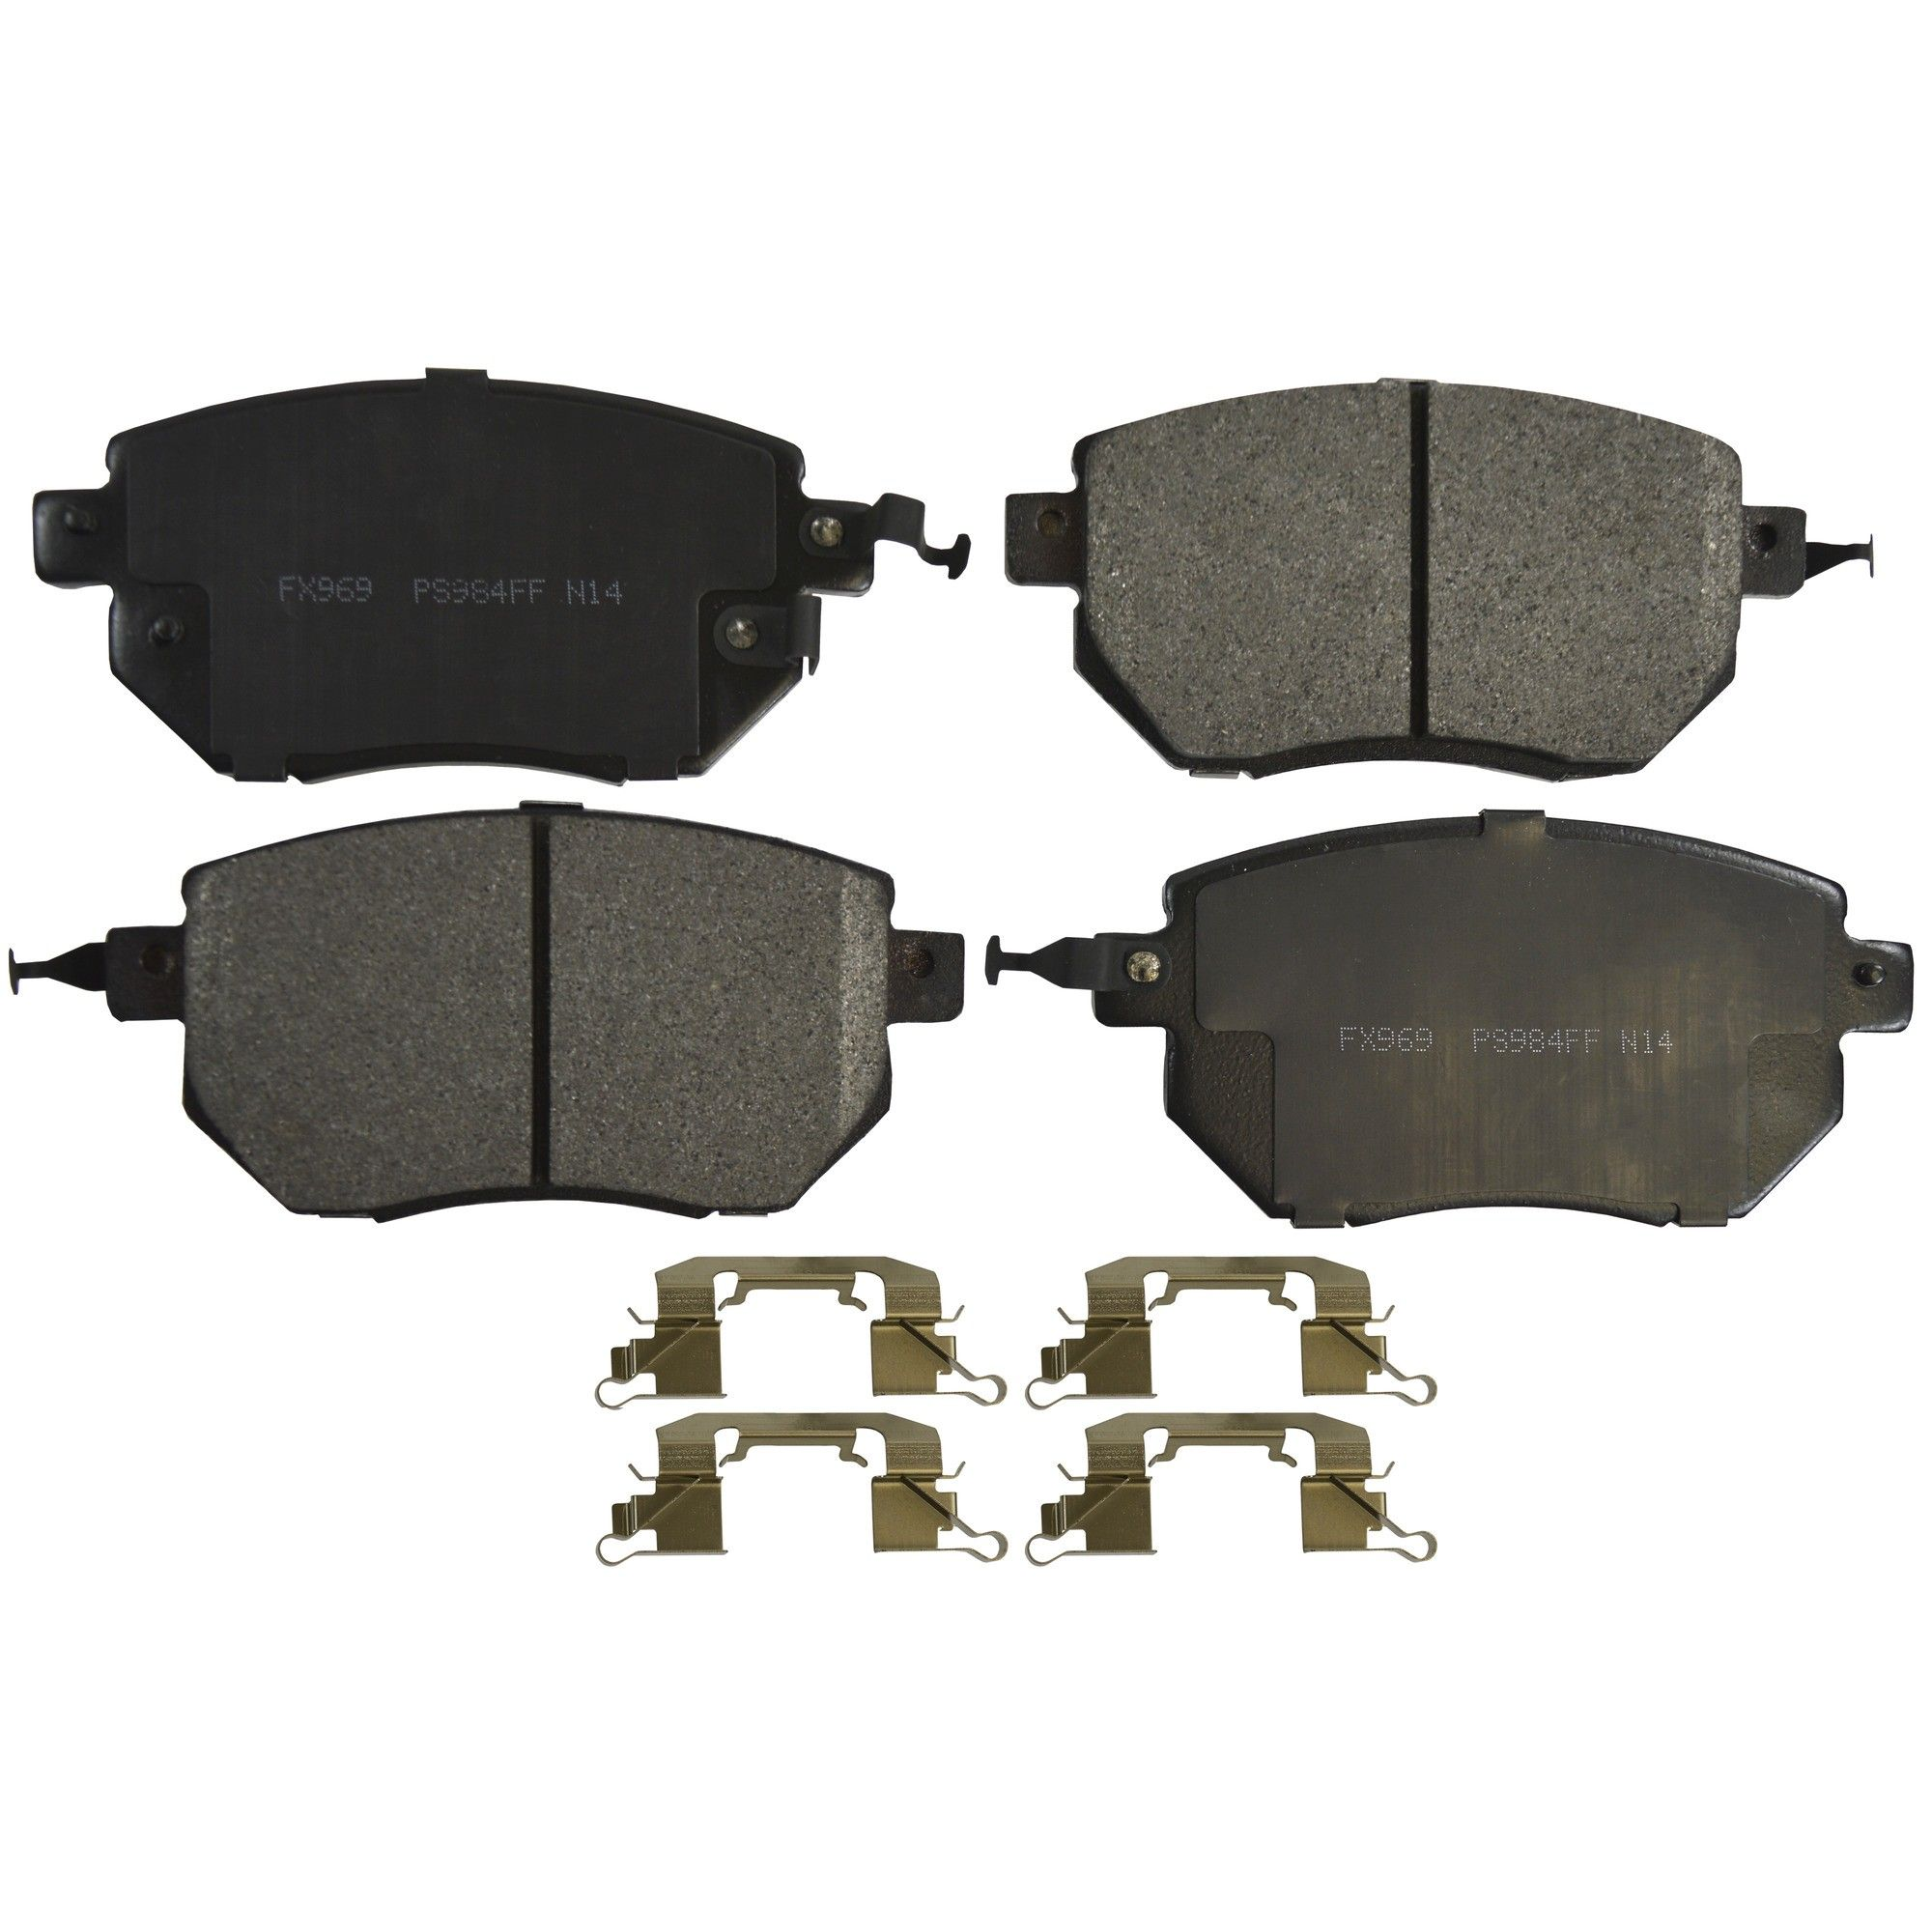 2005 Nissan Altima Disc Brake Pad   Front (Monroe FX969) Hardware Kit  Included .